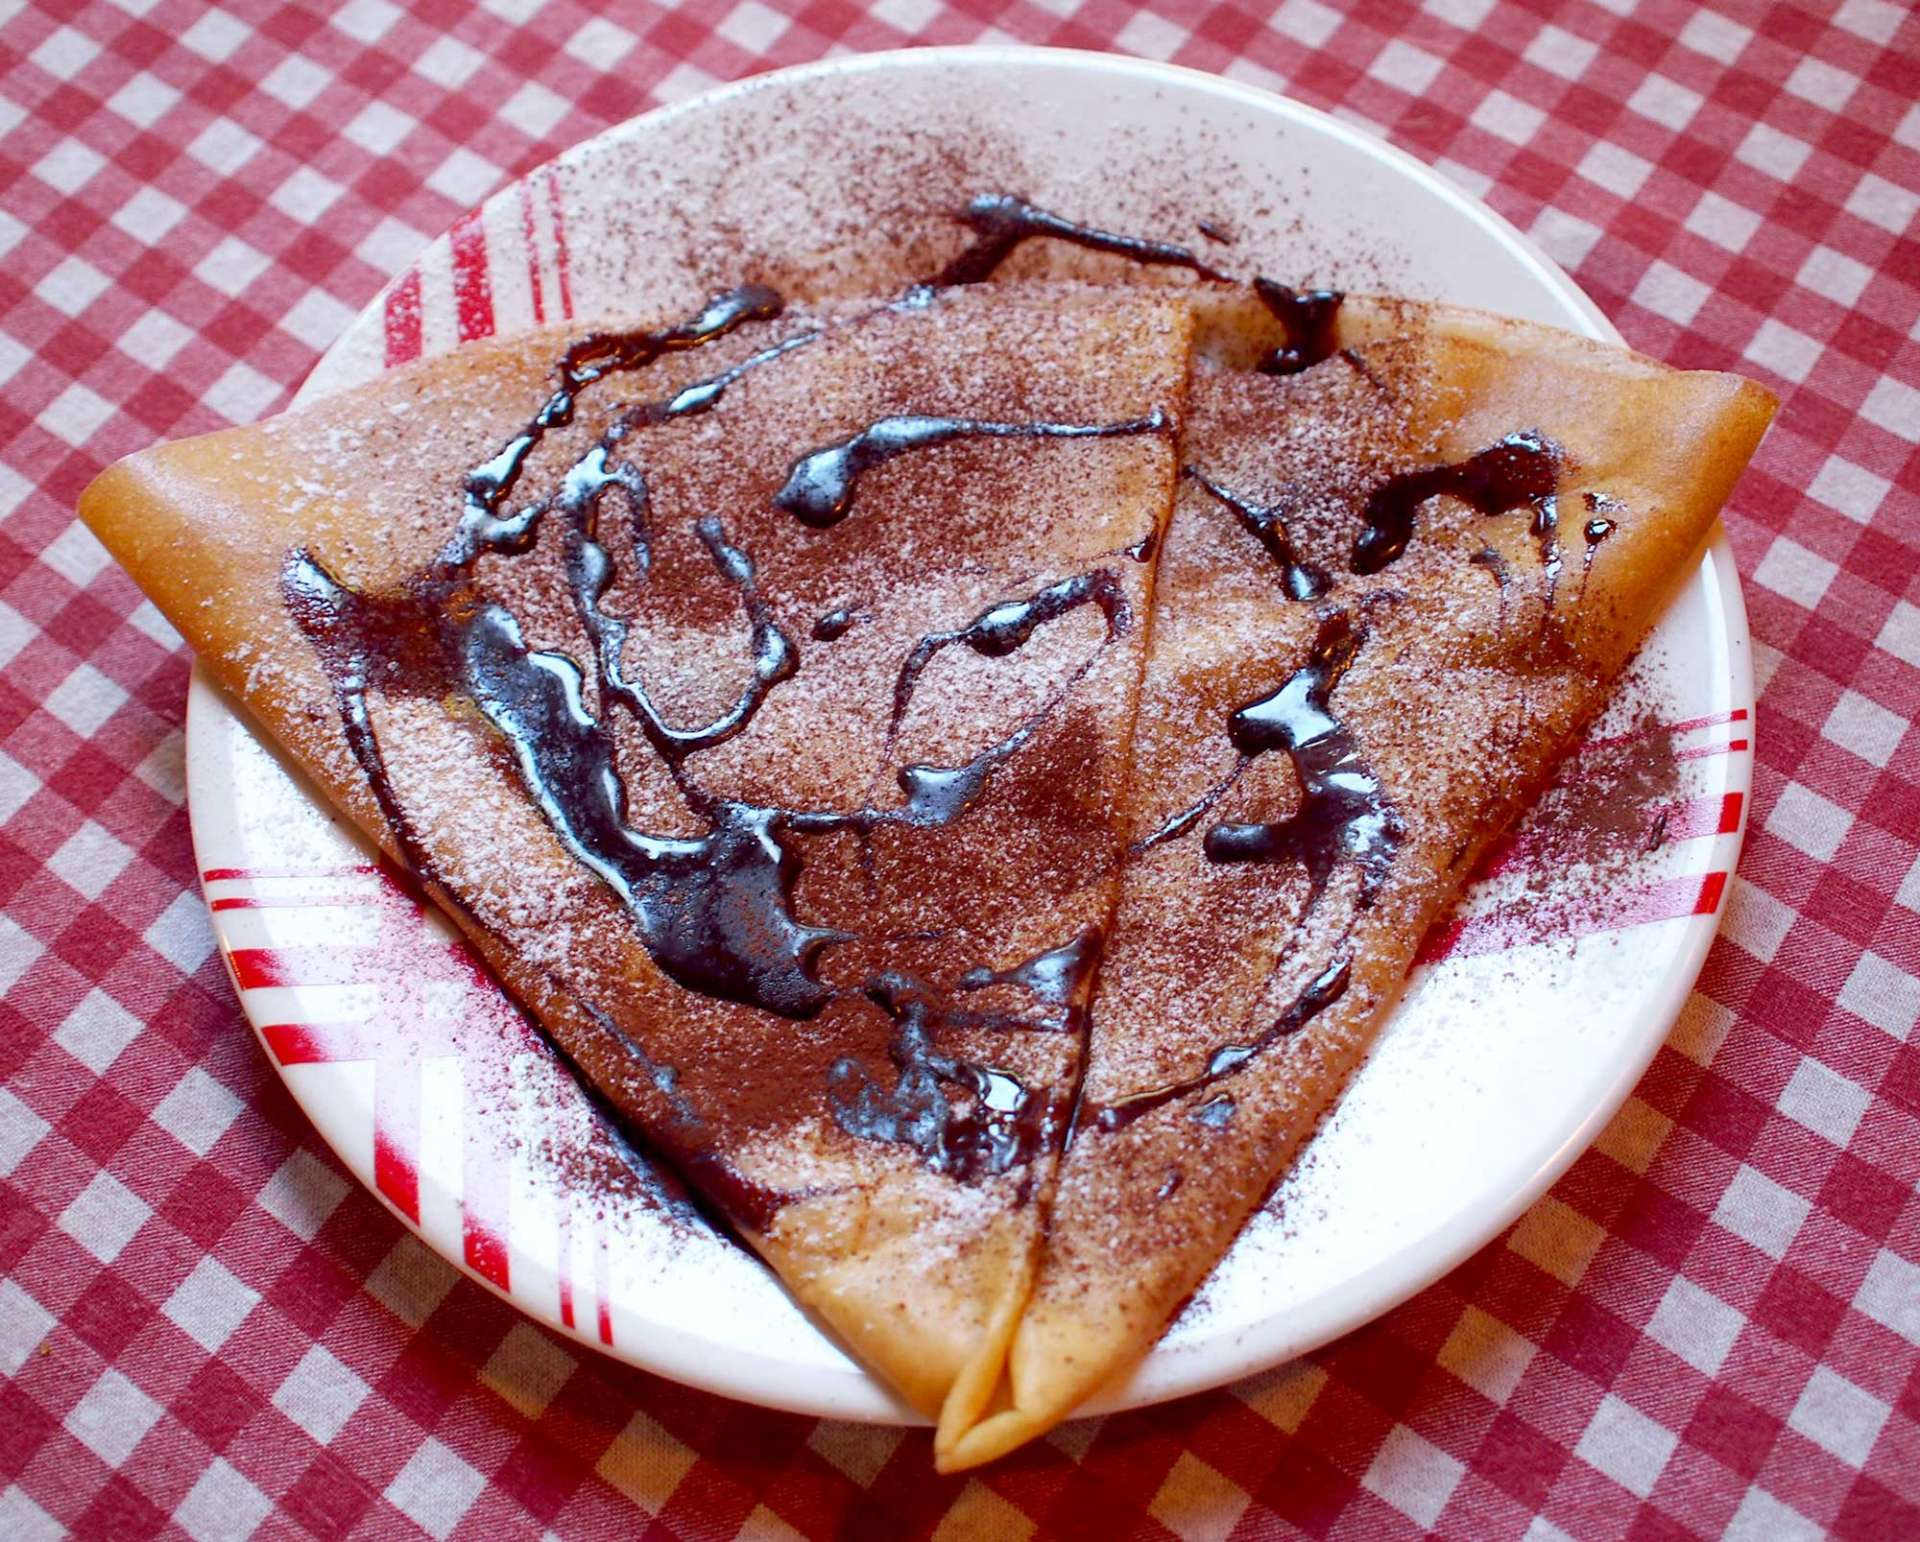 The Chocolate and Almond Crêpe  ¥650